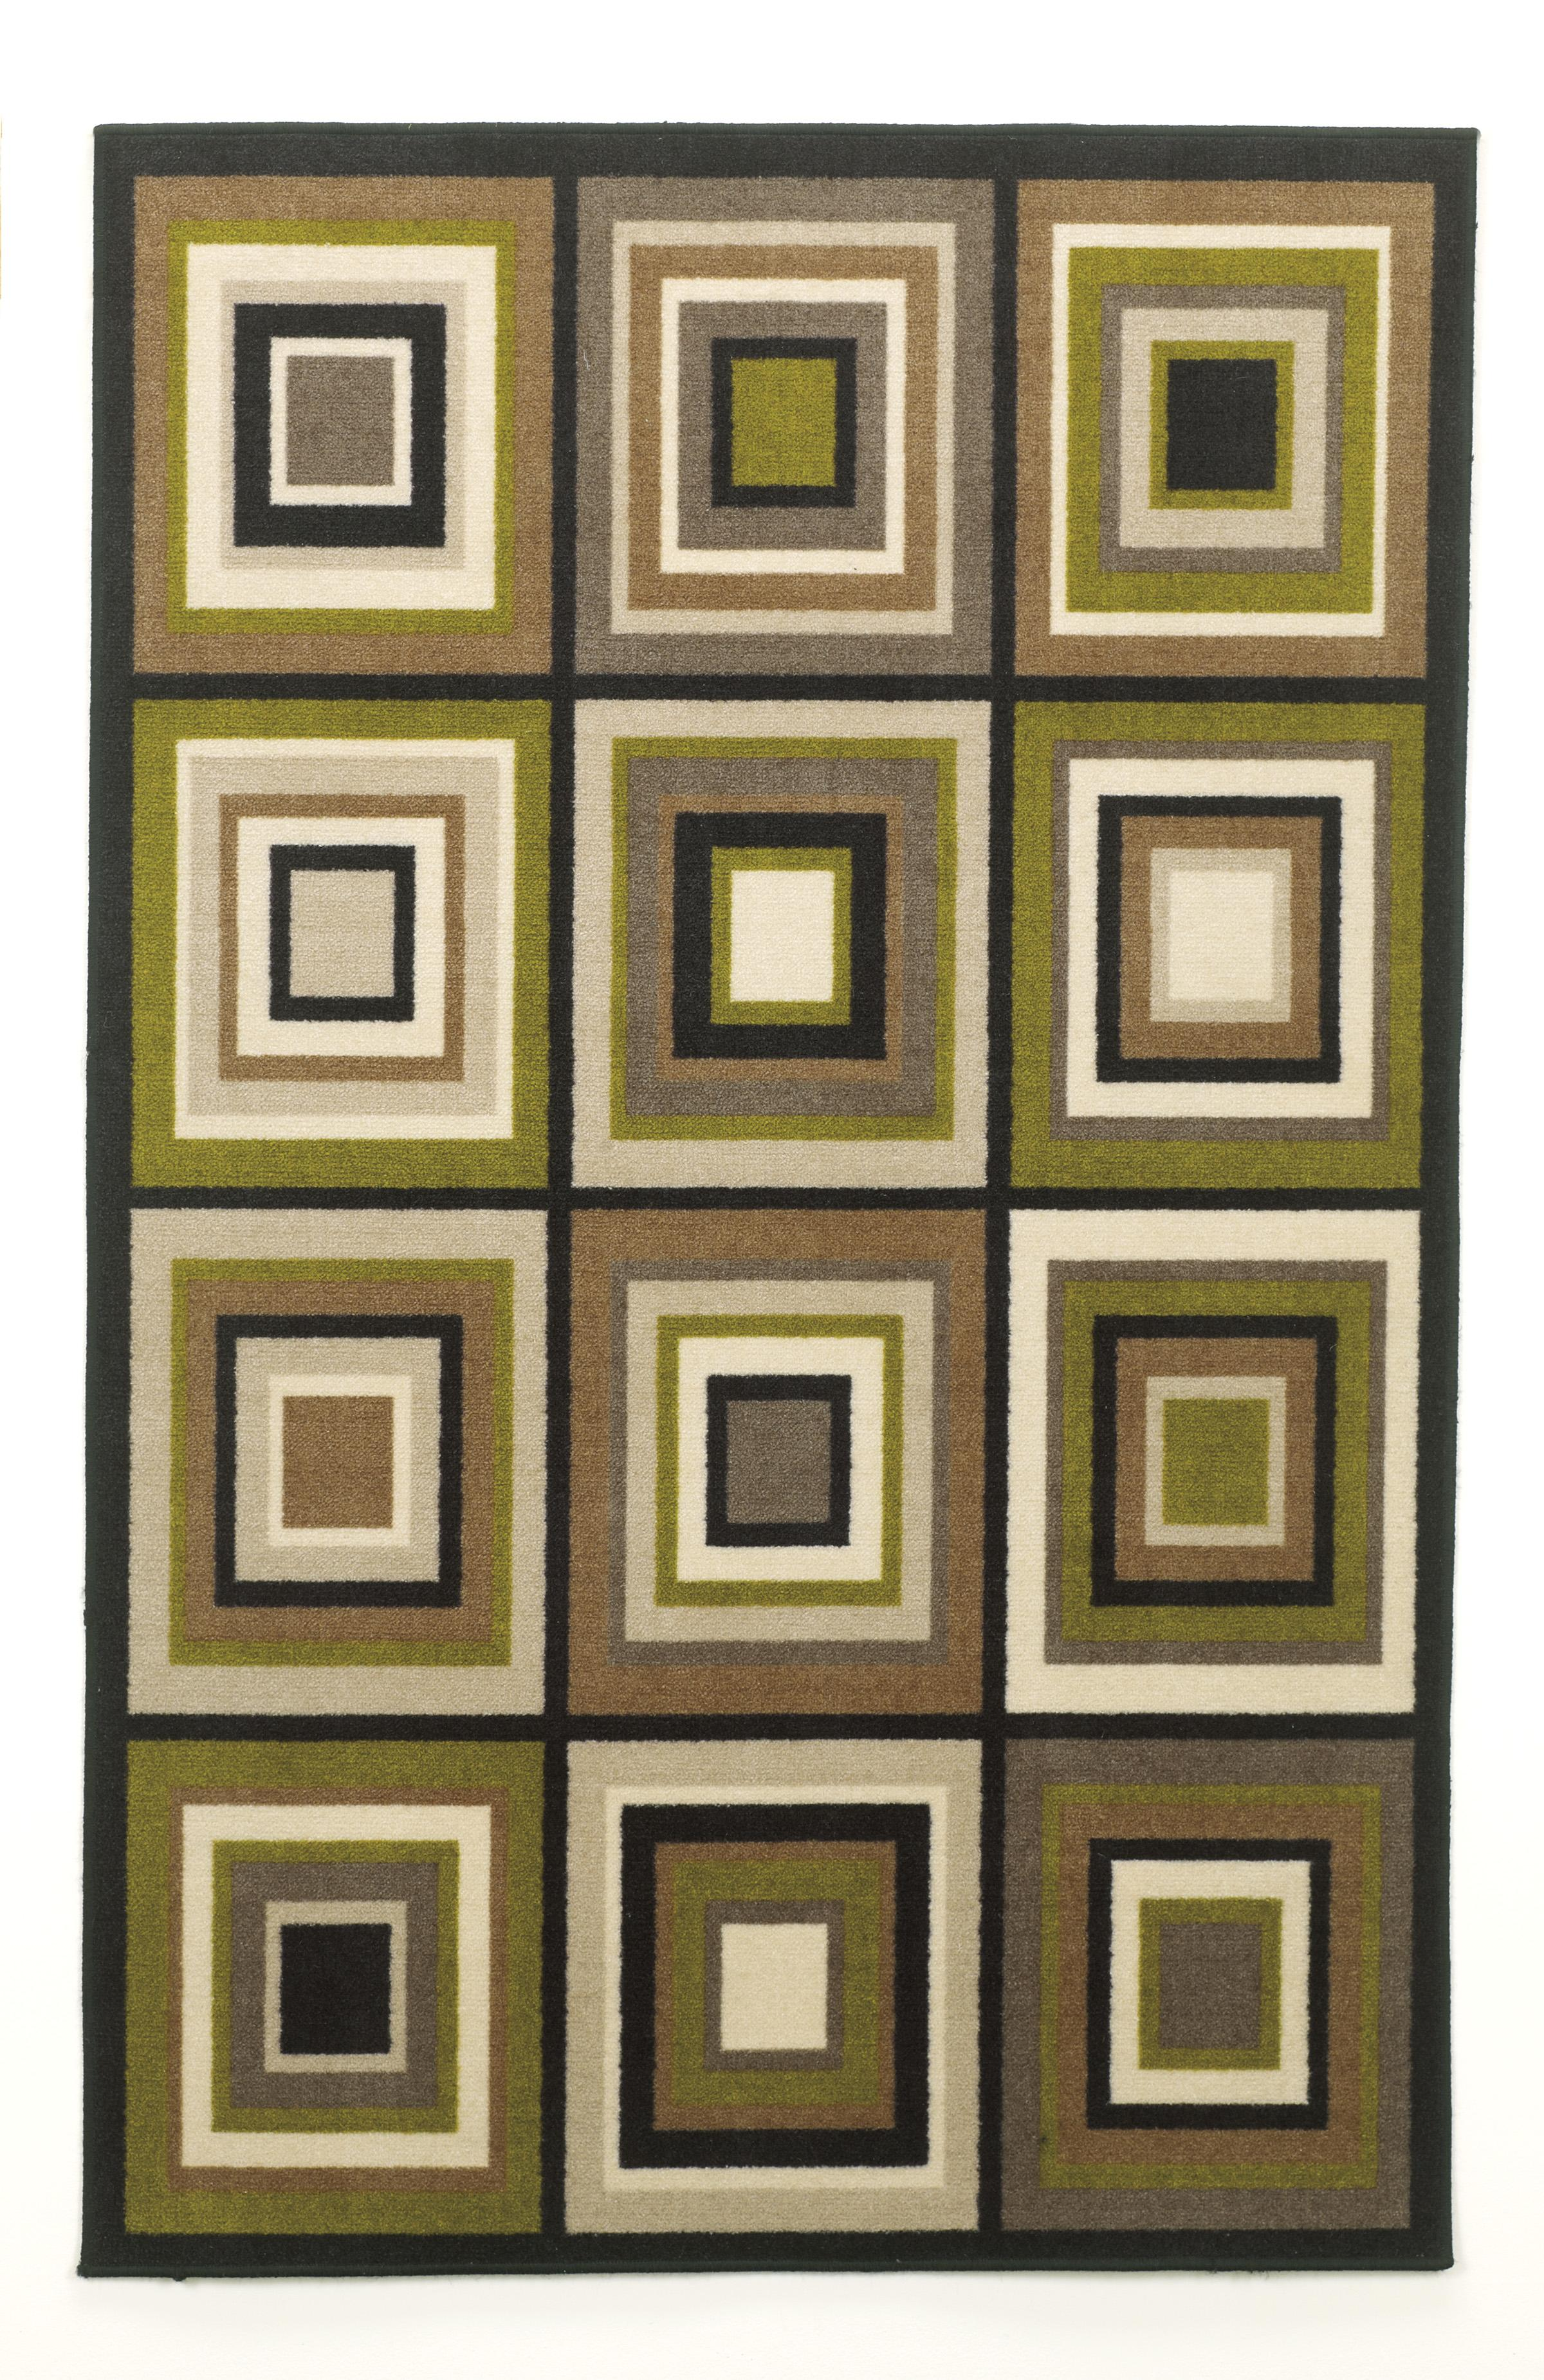 Contemporary Area Rugs Chari - Lime Small Rug by Signature Design at Fisher Home Furnishings